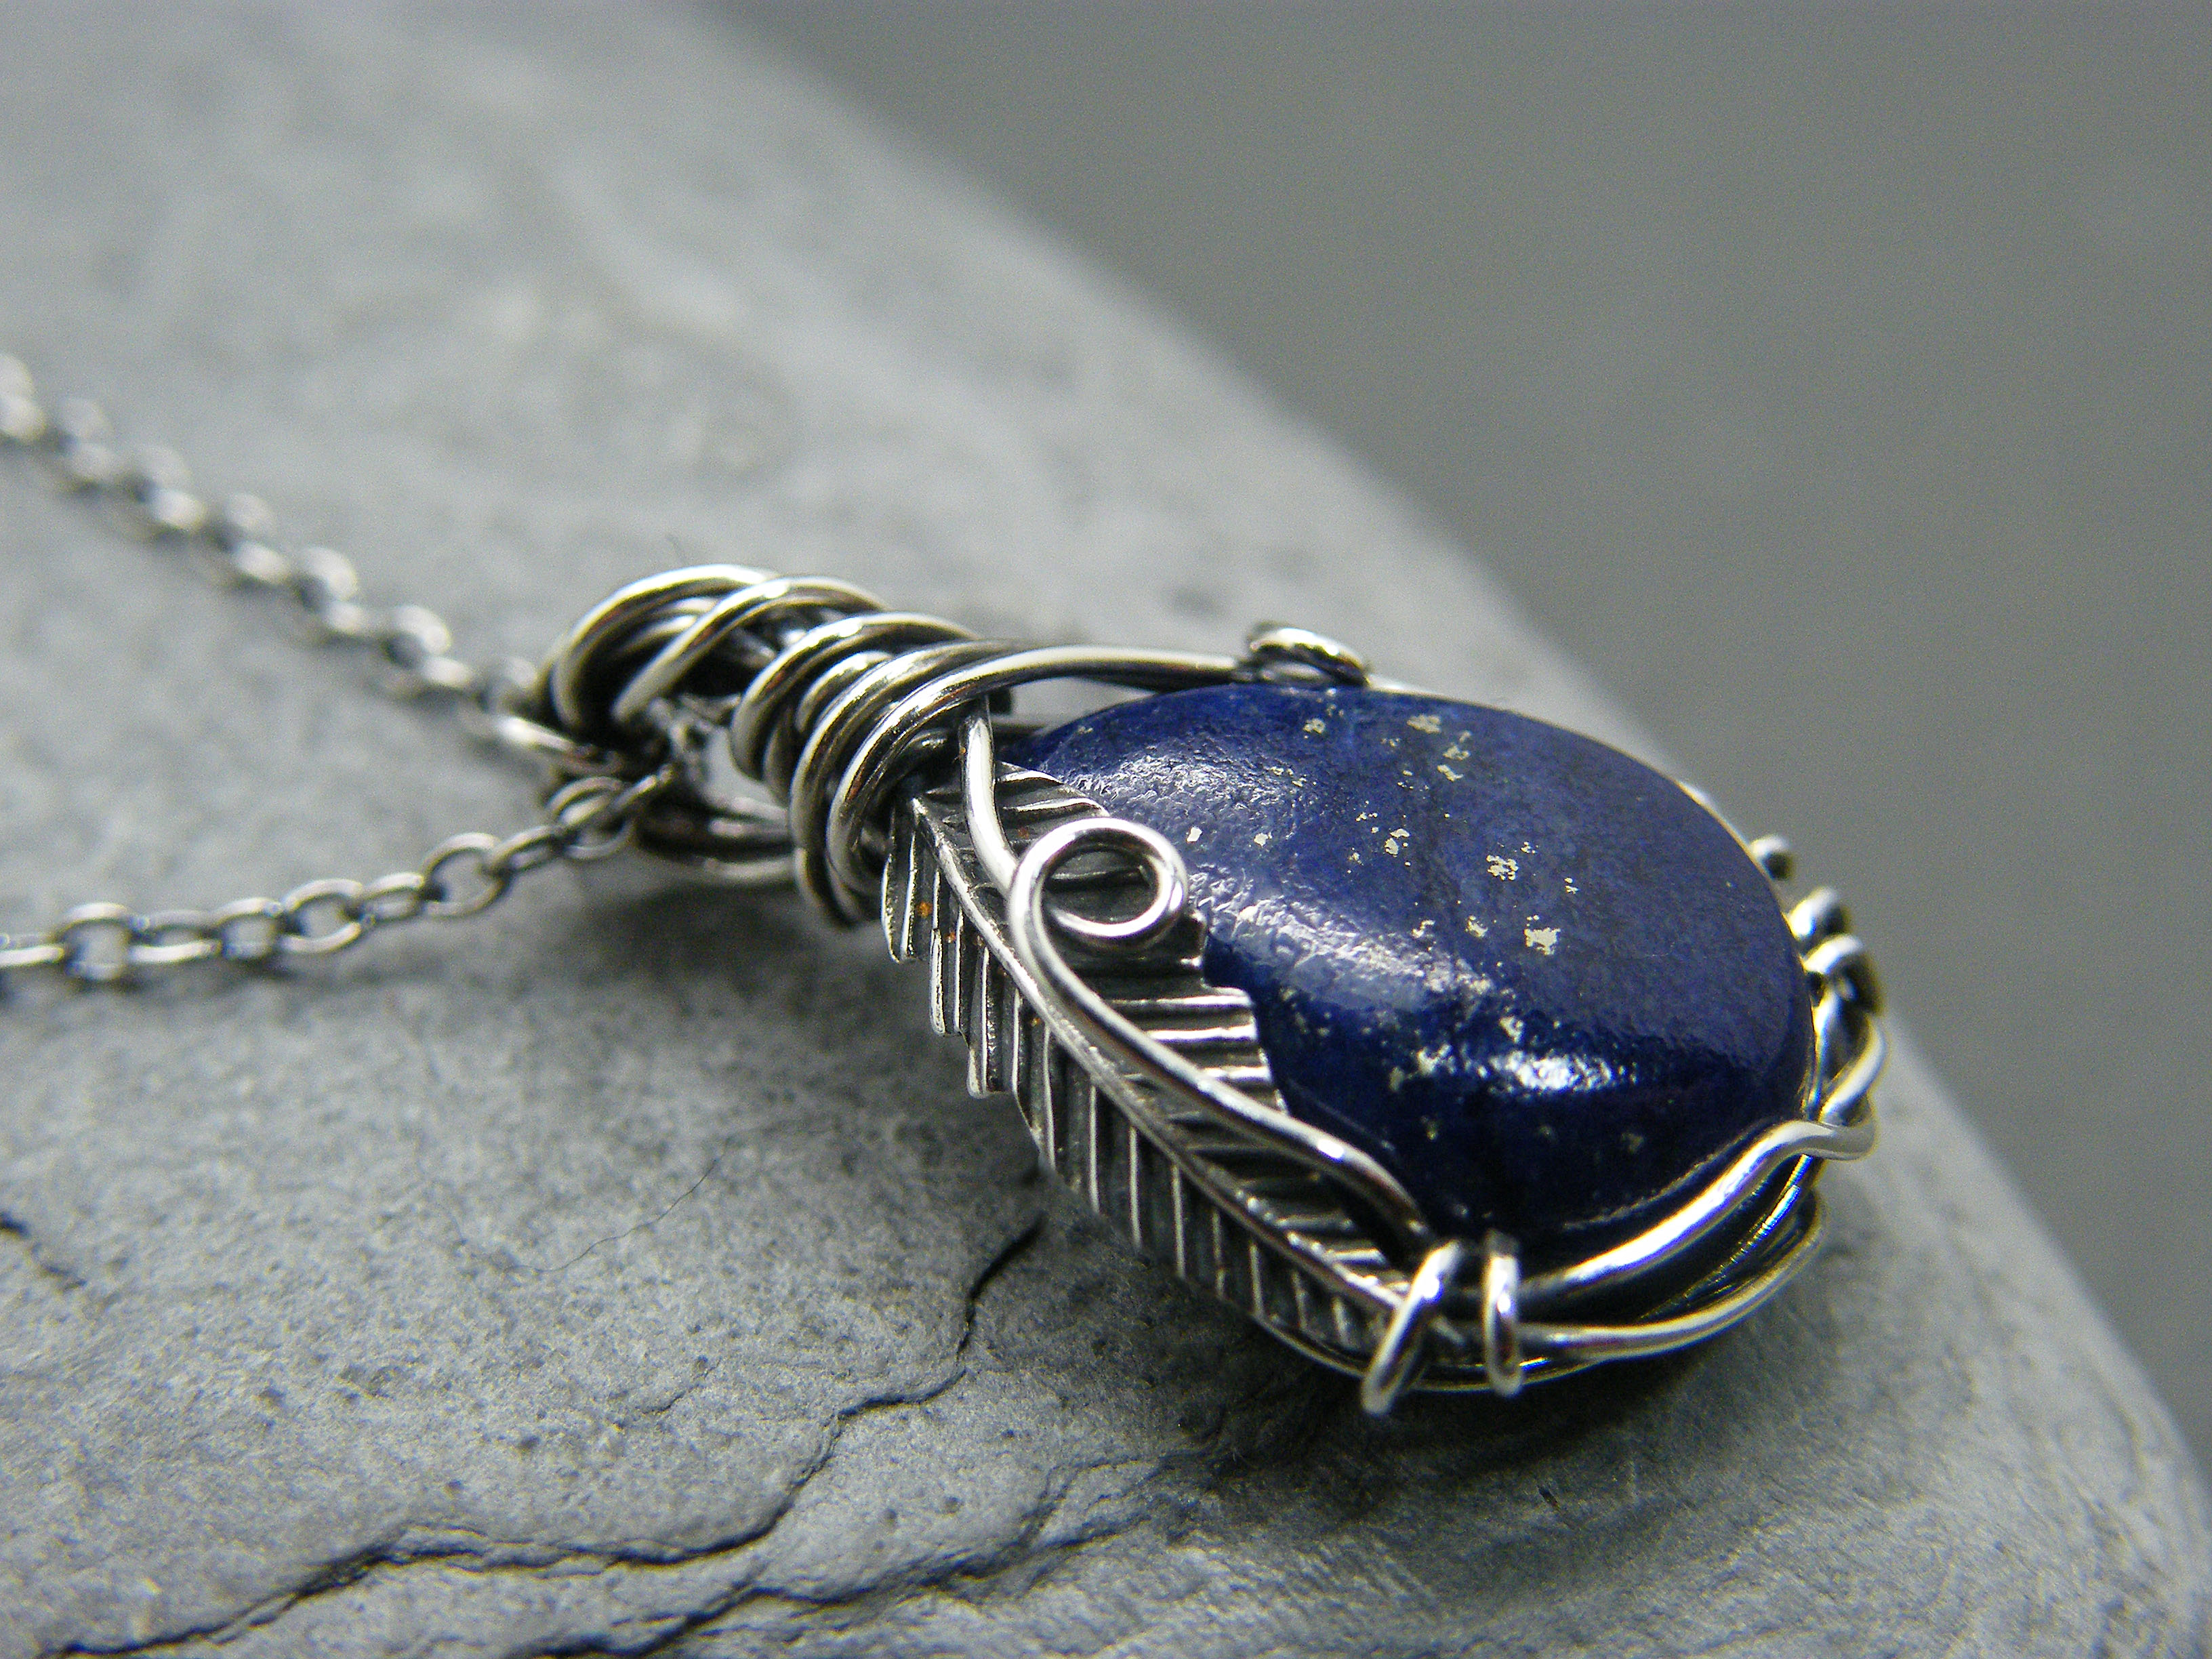 Lapis lazuli necklace, Feather necklace, Sterling silver feather pendant